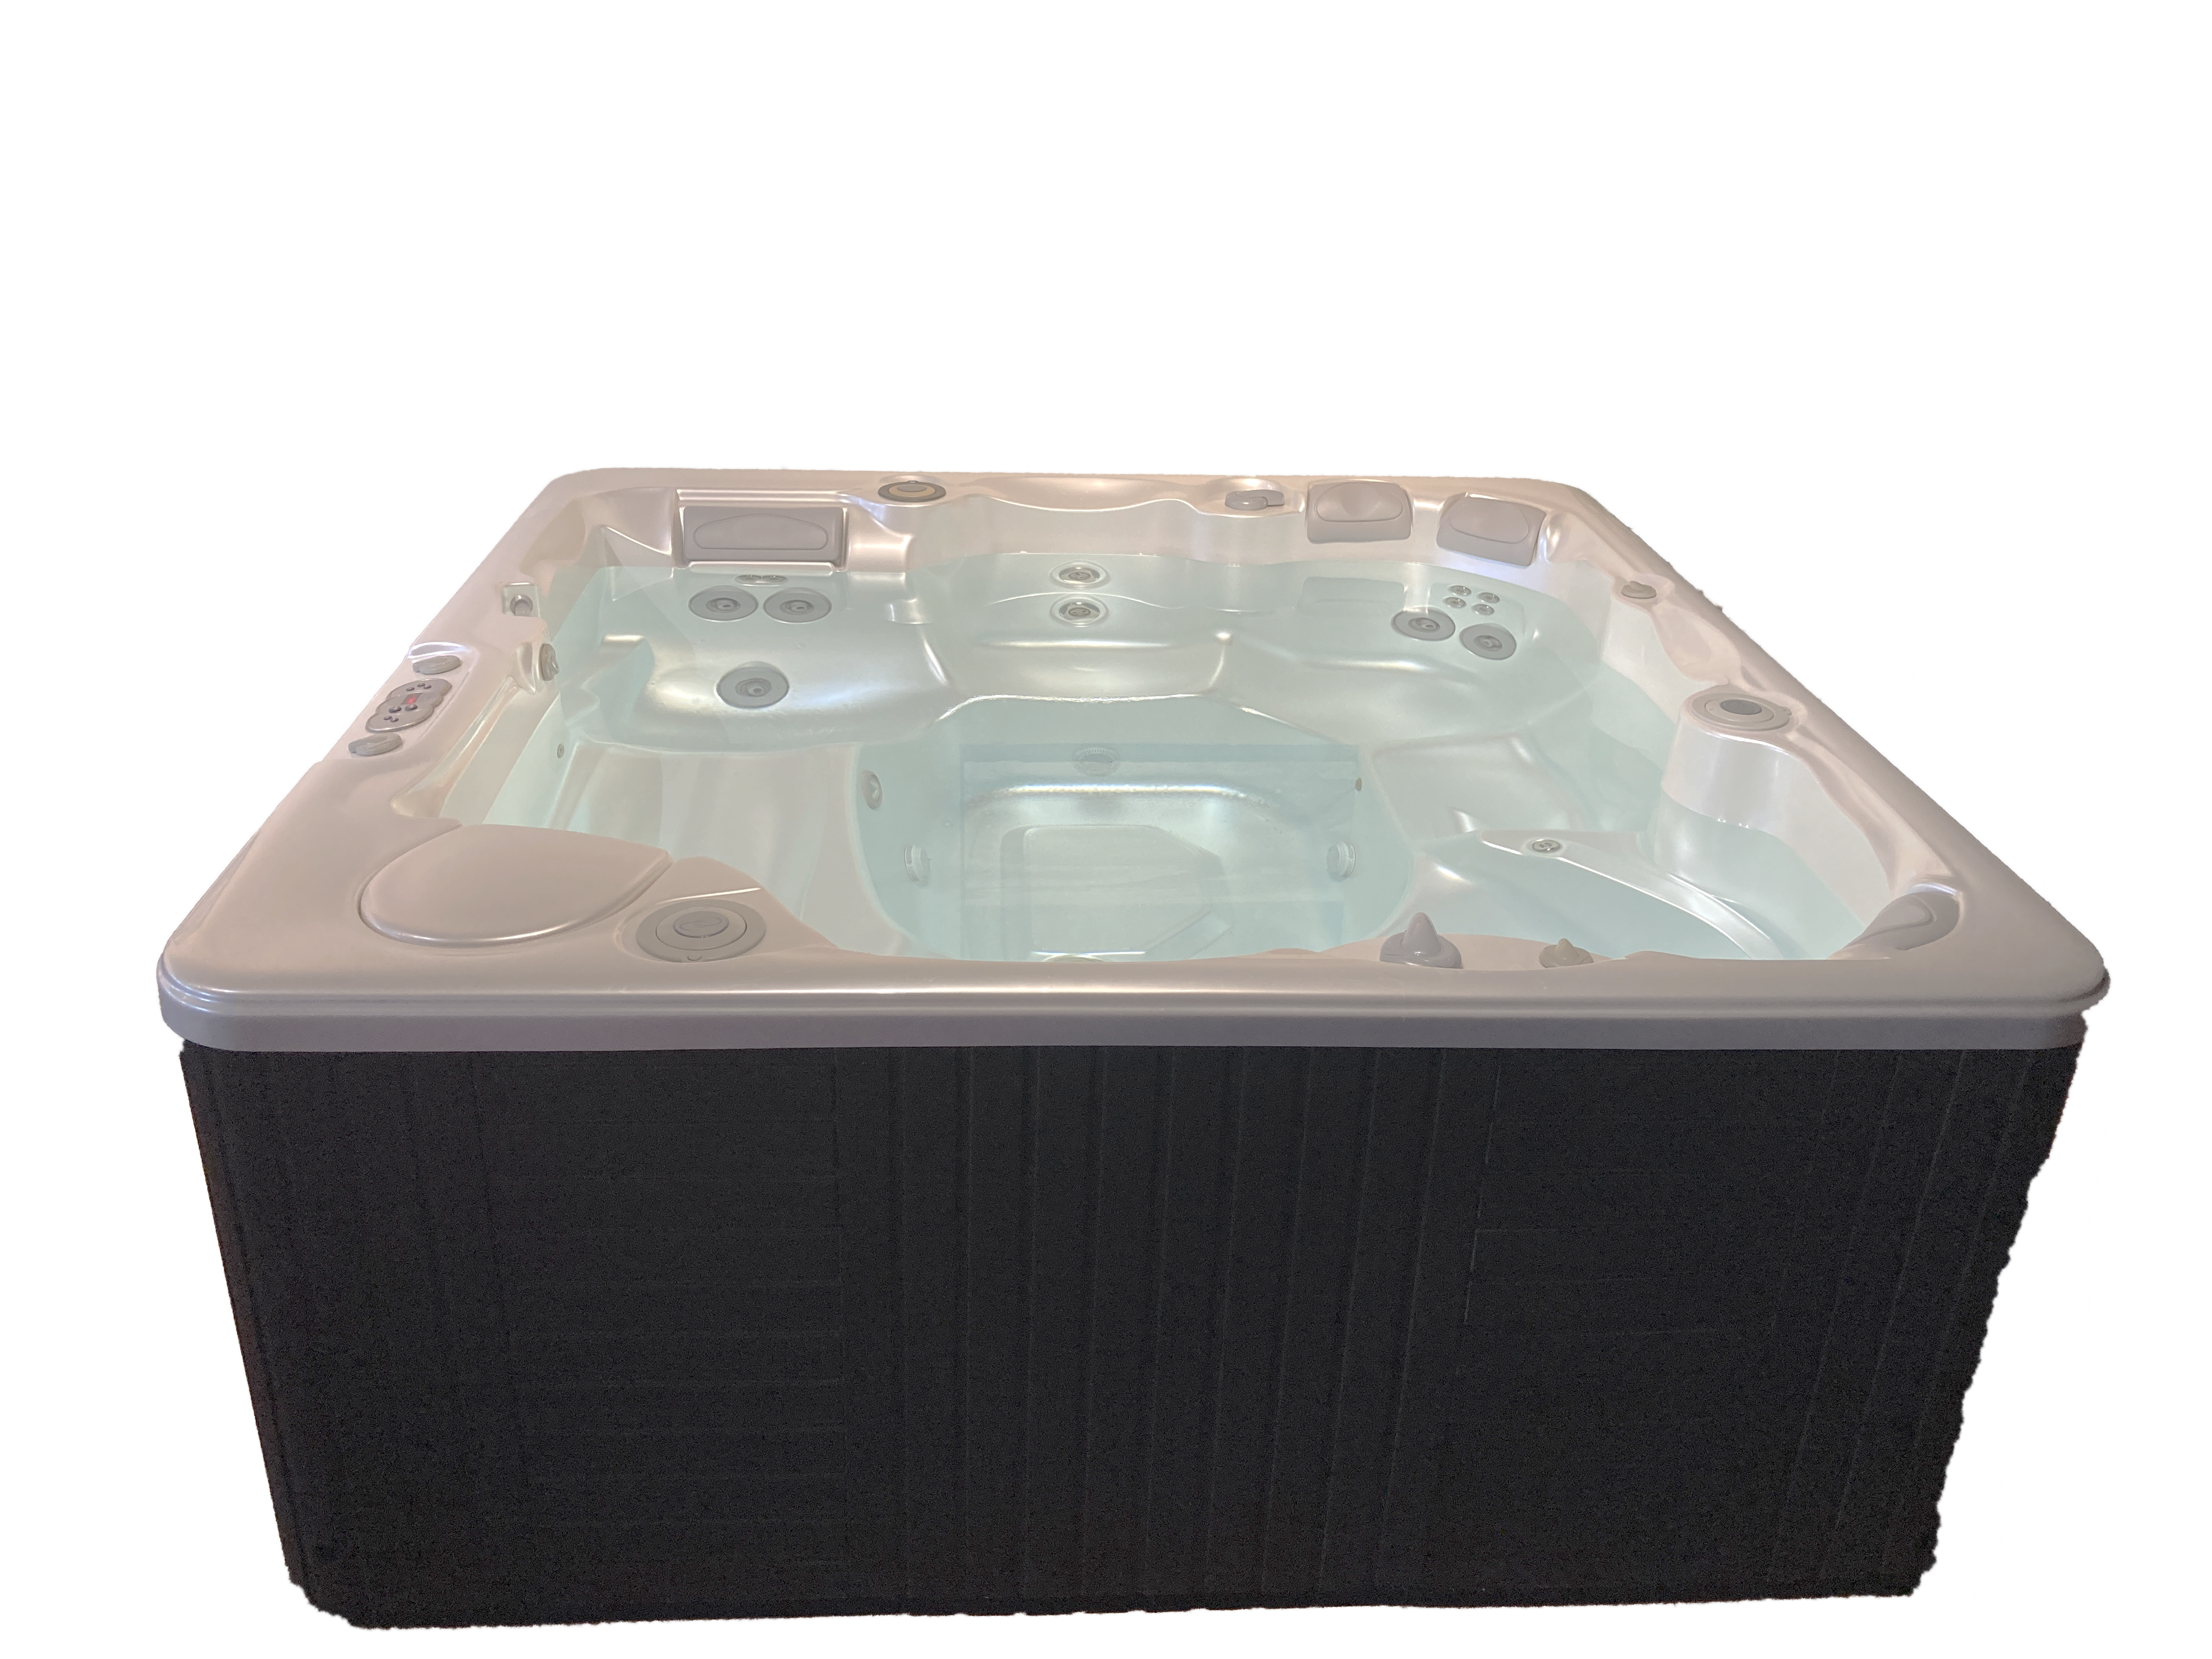 Caldera Pre-Owned, Refurbished Hot Tub w/ Pearl White Shell for sale